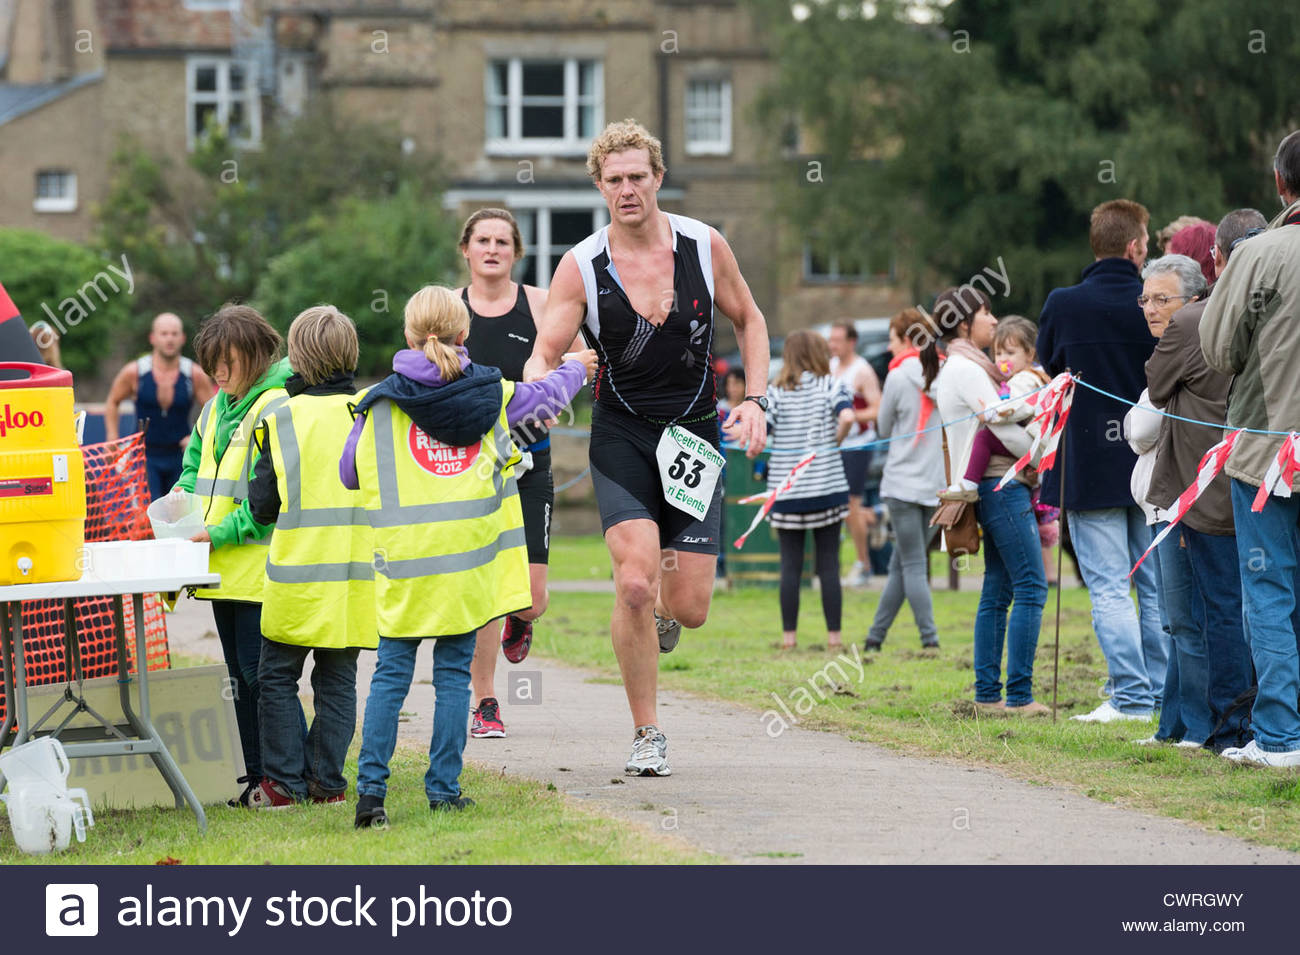 Triathlete Run Stock Photos Triathlete Run Stock Images Alamy